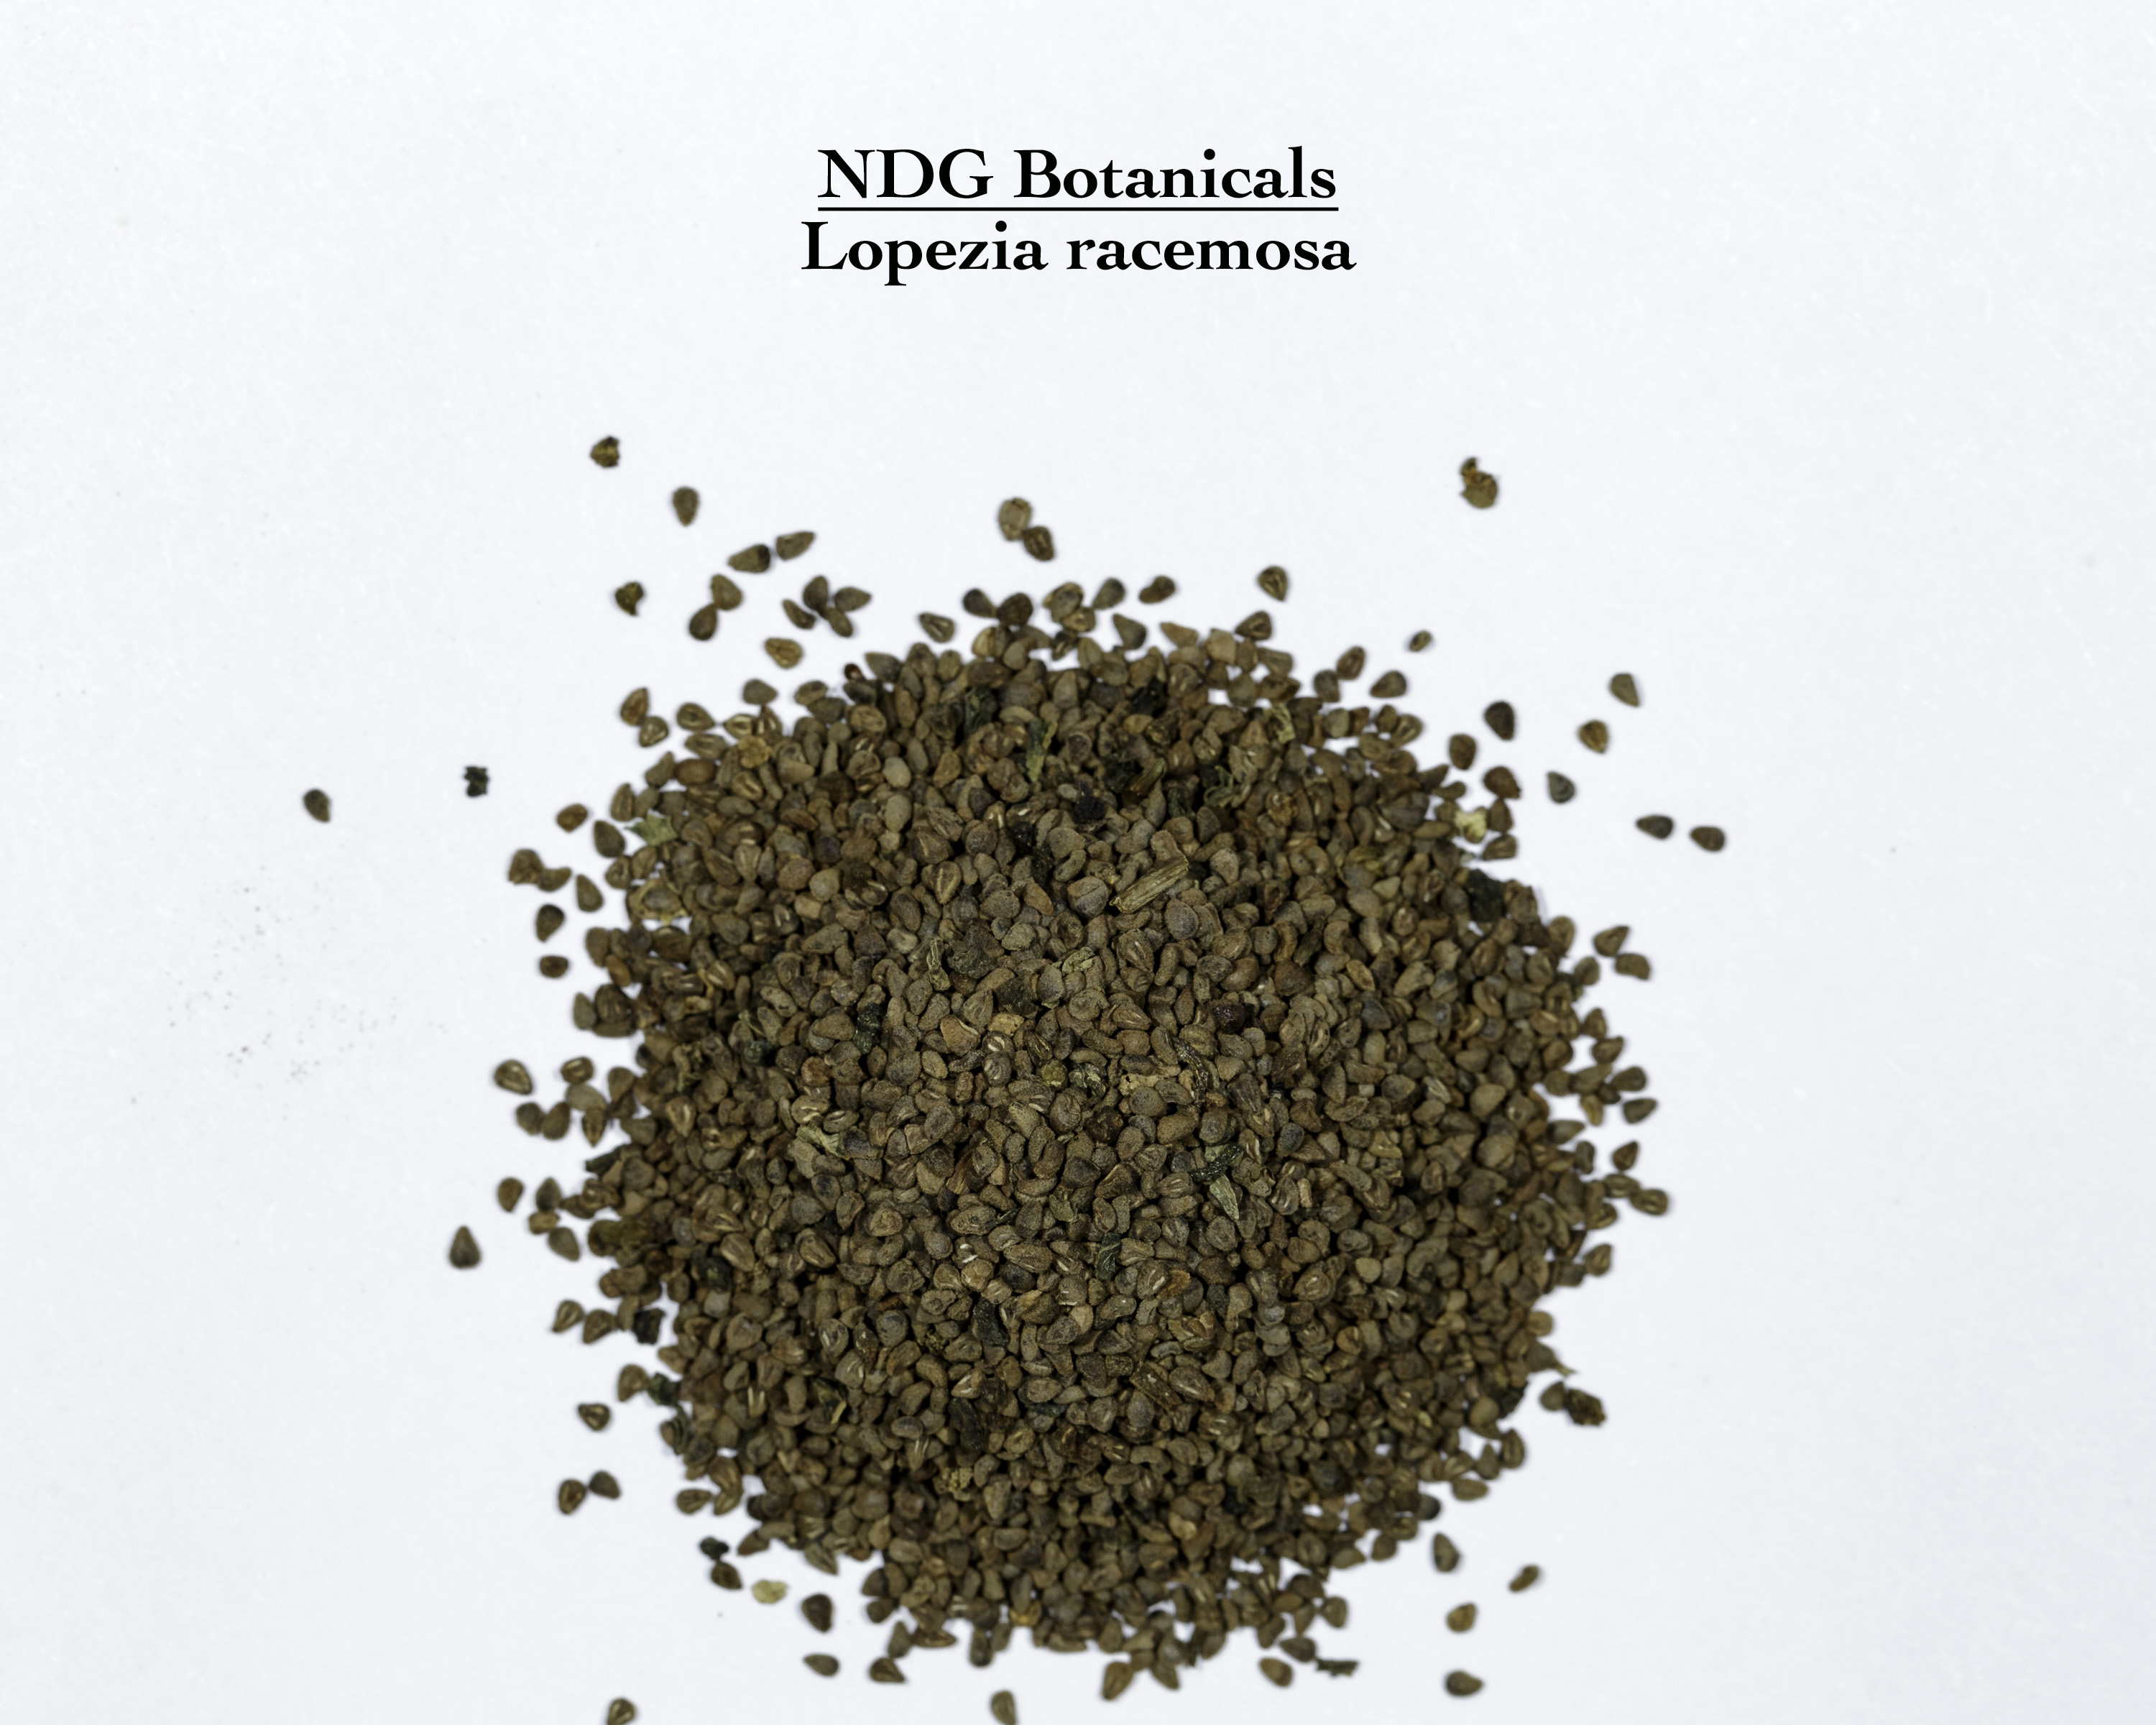 A top down view of a small pile of Lopezia racemosa (Mosquito Flower) seeds.